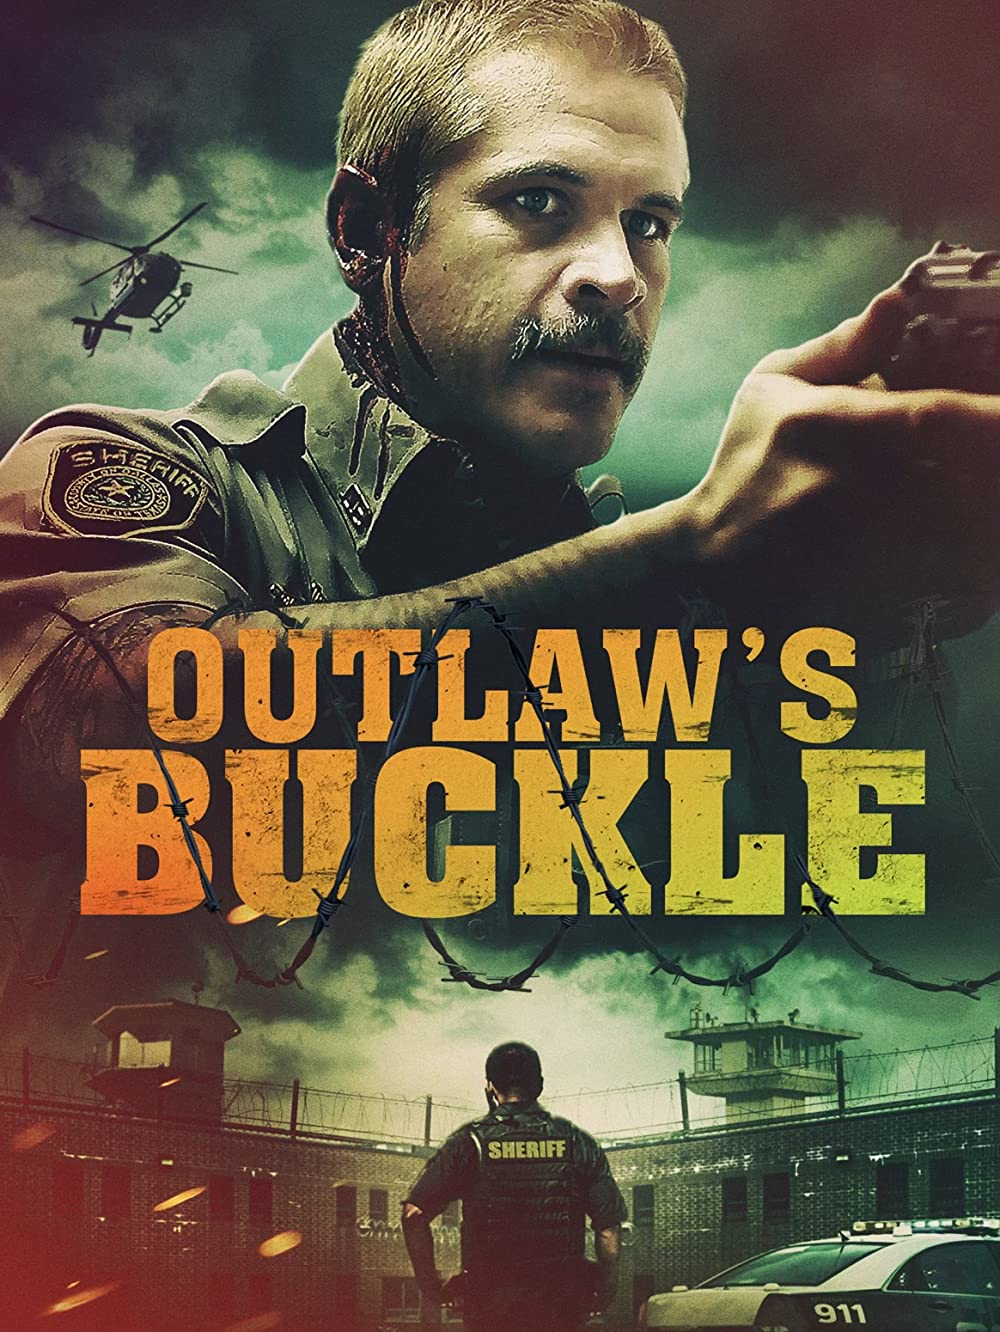 Outlaw's Buckle (2021) Bengali Dubbed (Voice Over) WEBRip 720p [Full Movie] 1XBET